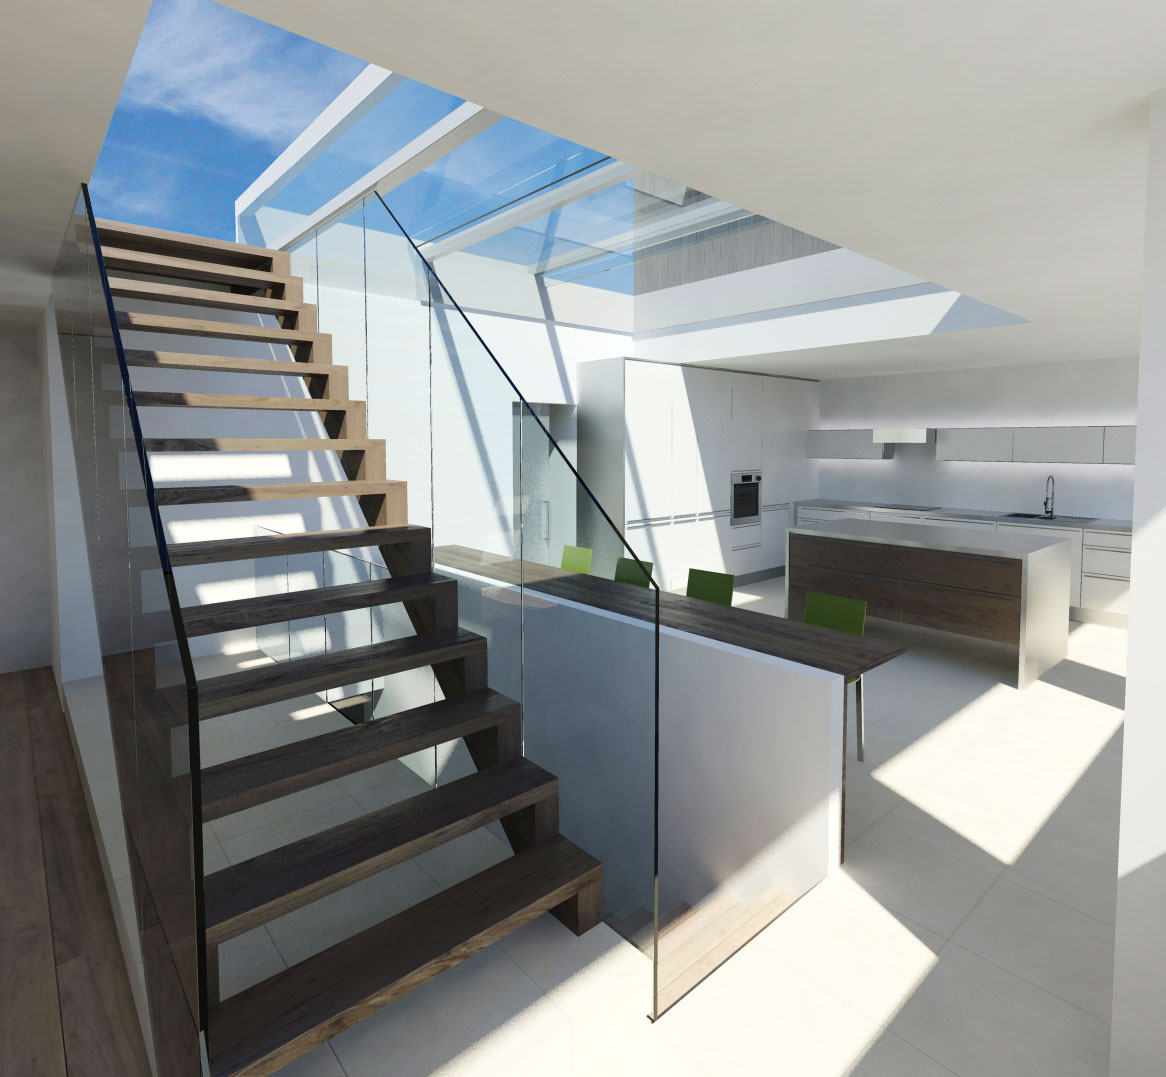 20_palace_street-cgi_roof_stair